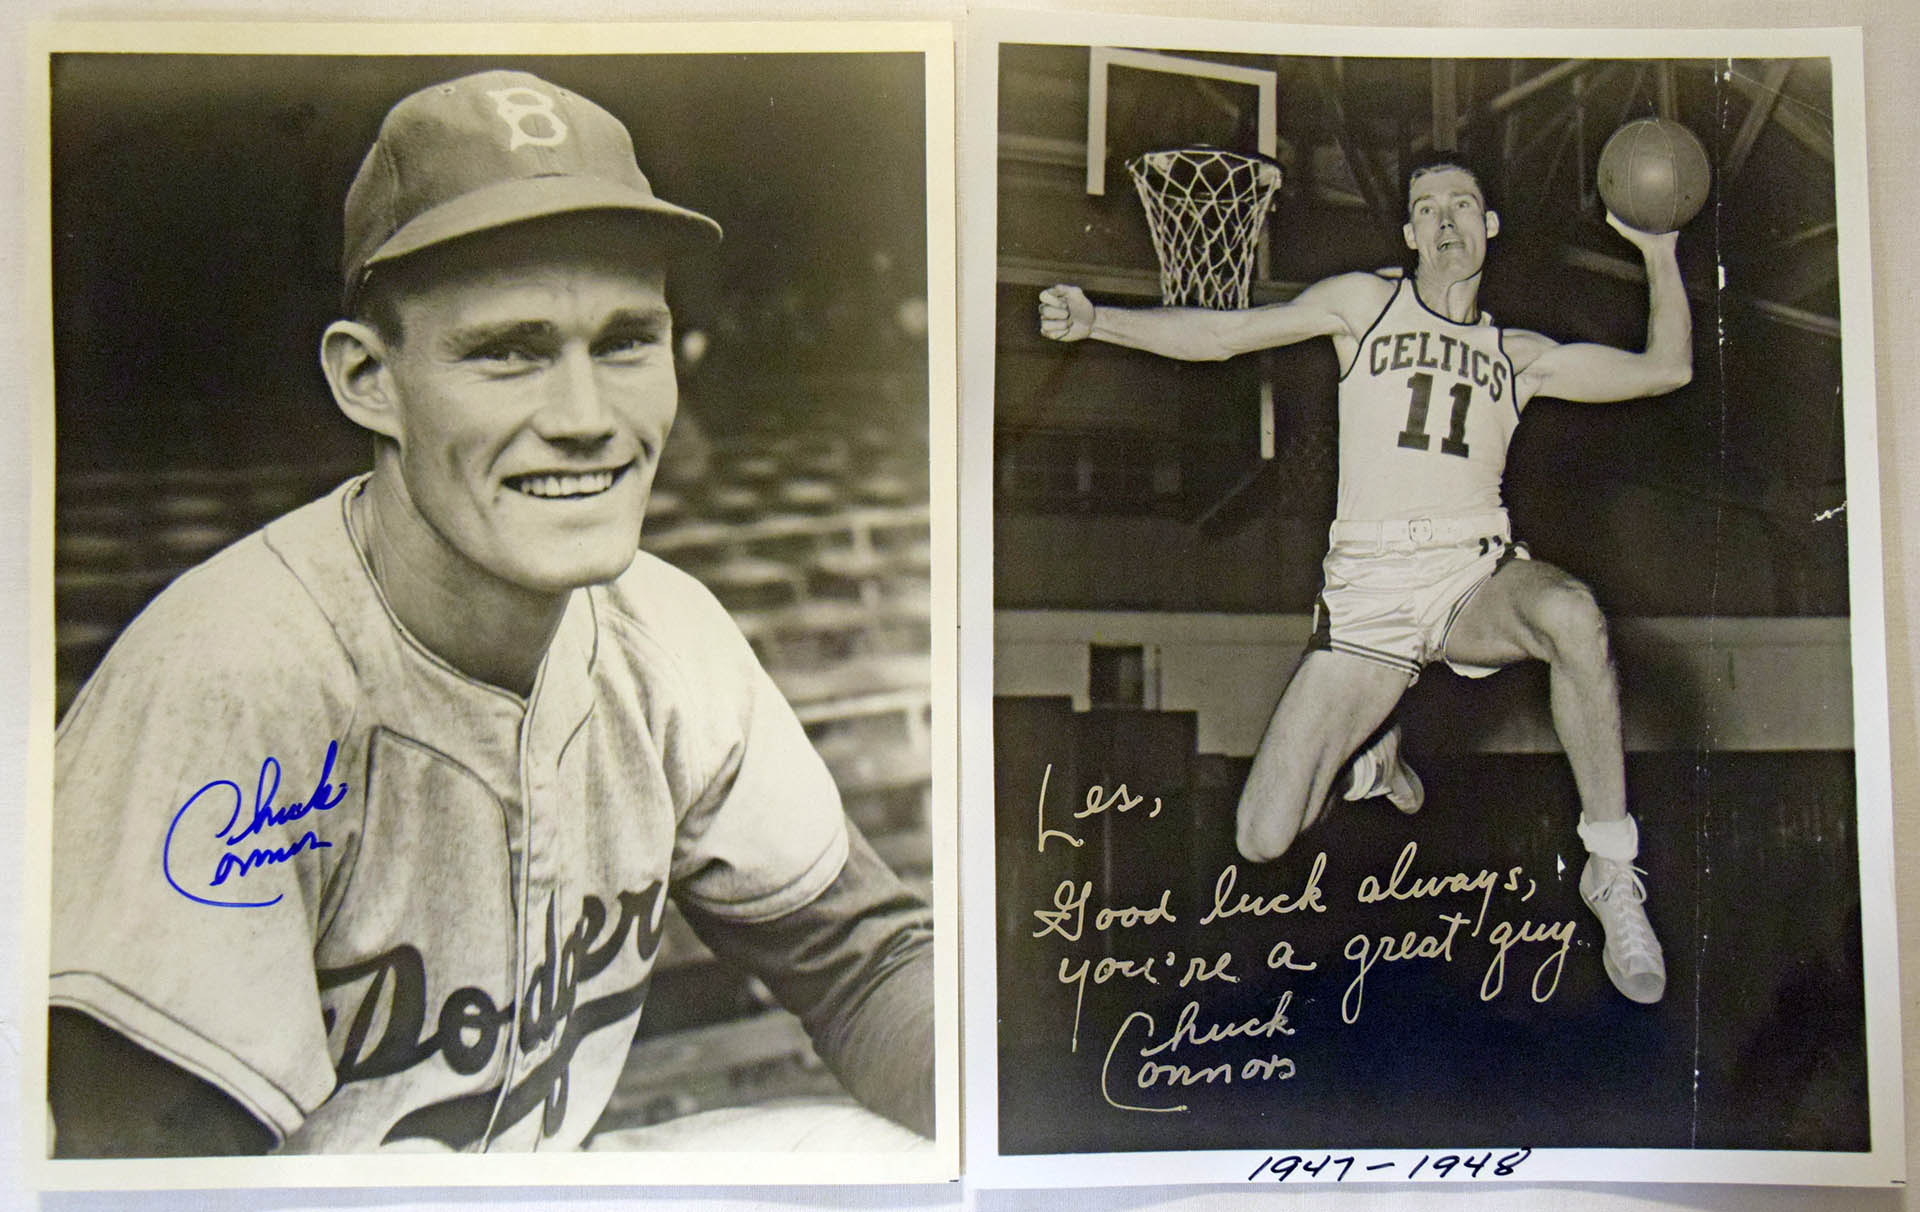 Lot #193  8 x 10  Connors, Chuck (lot of 2) Cond: 9.5